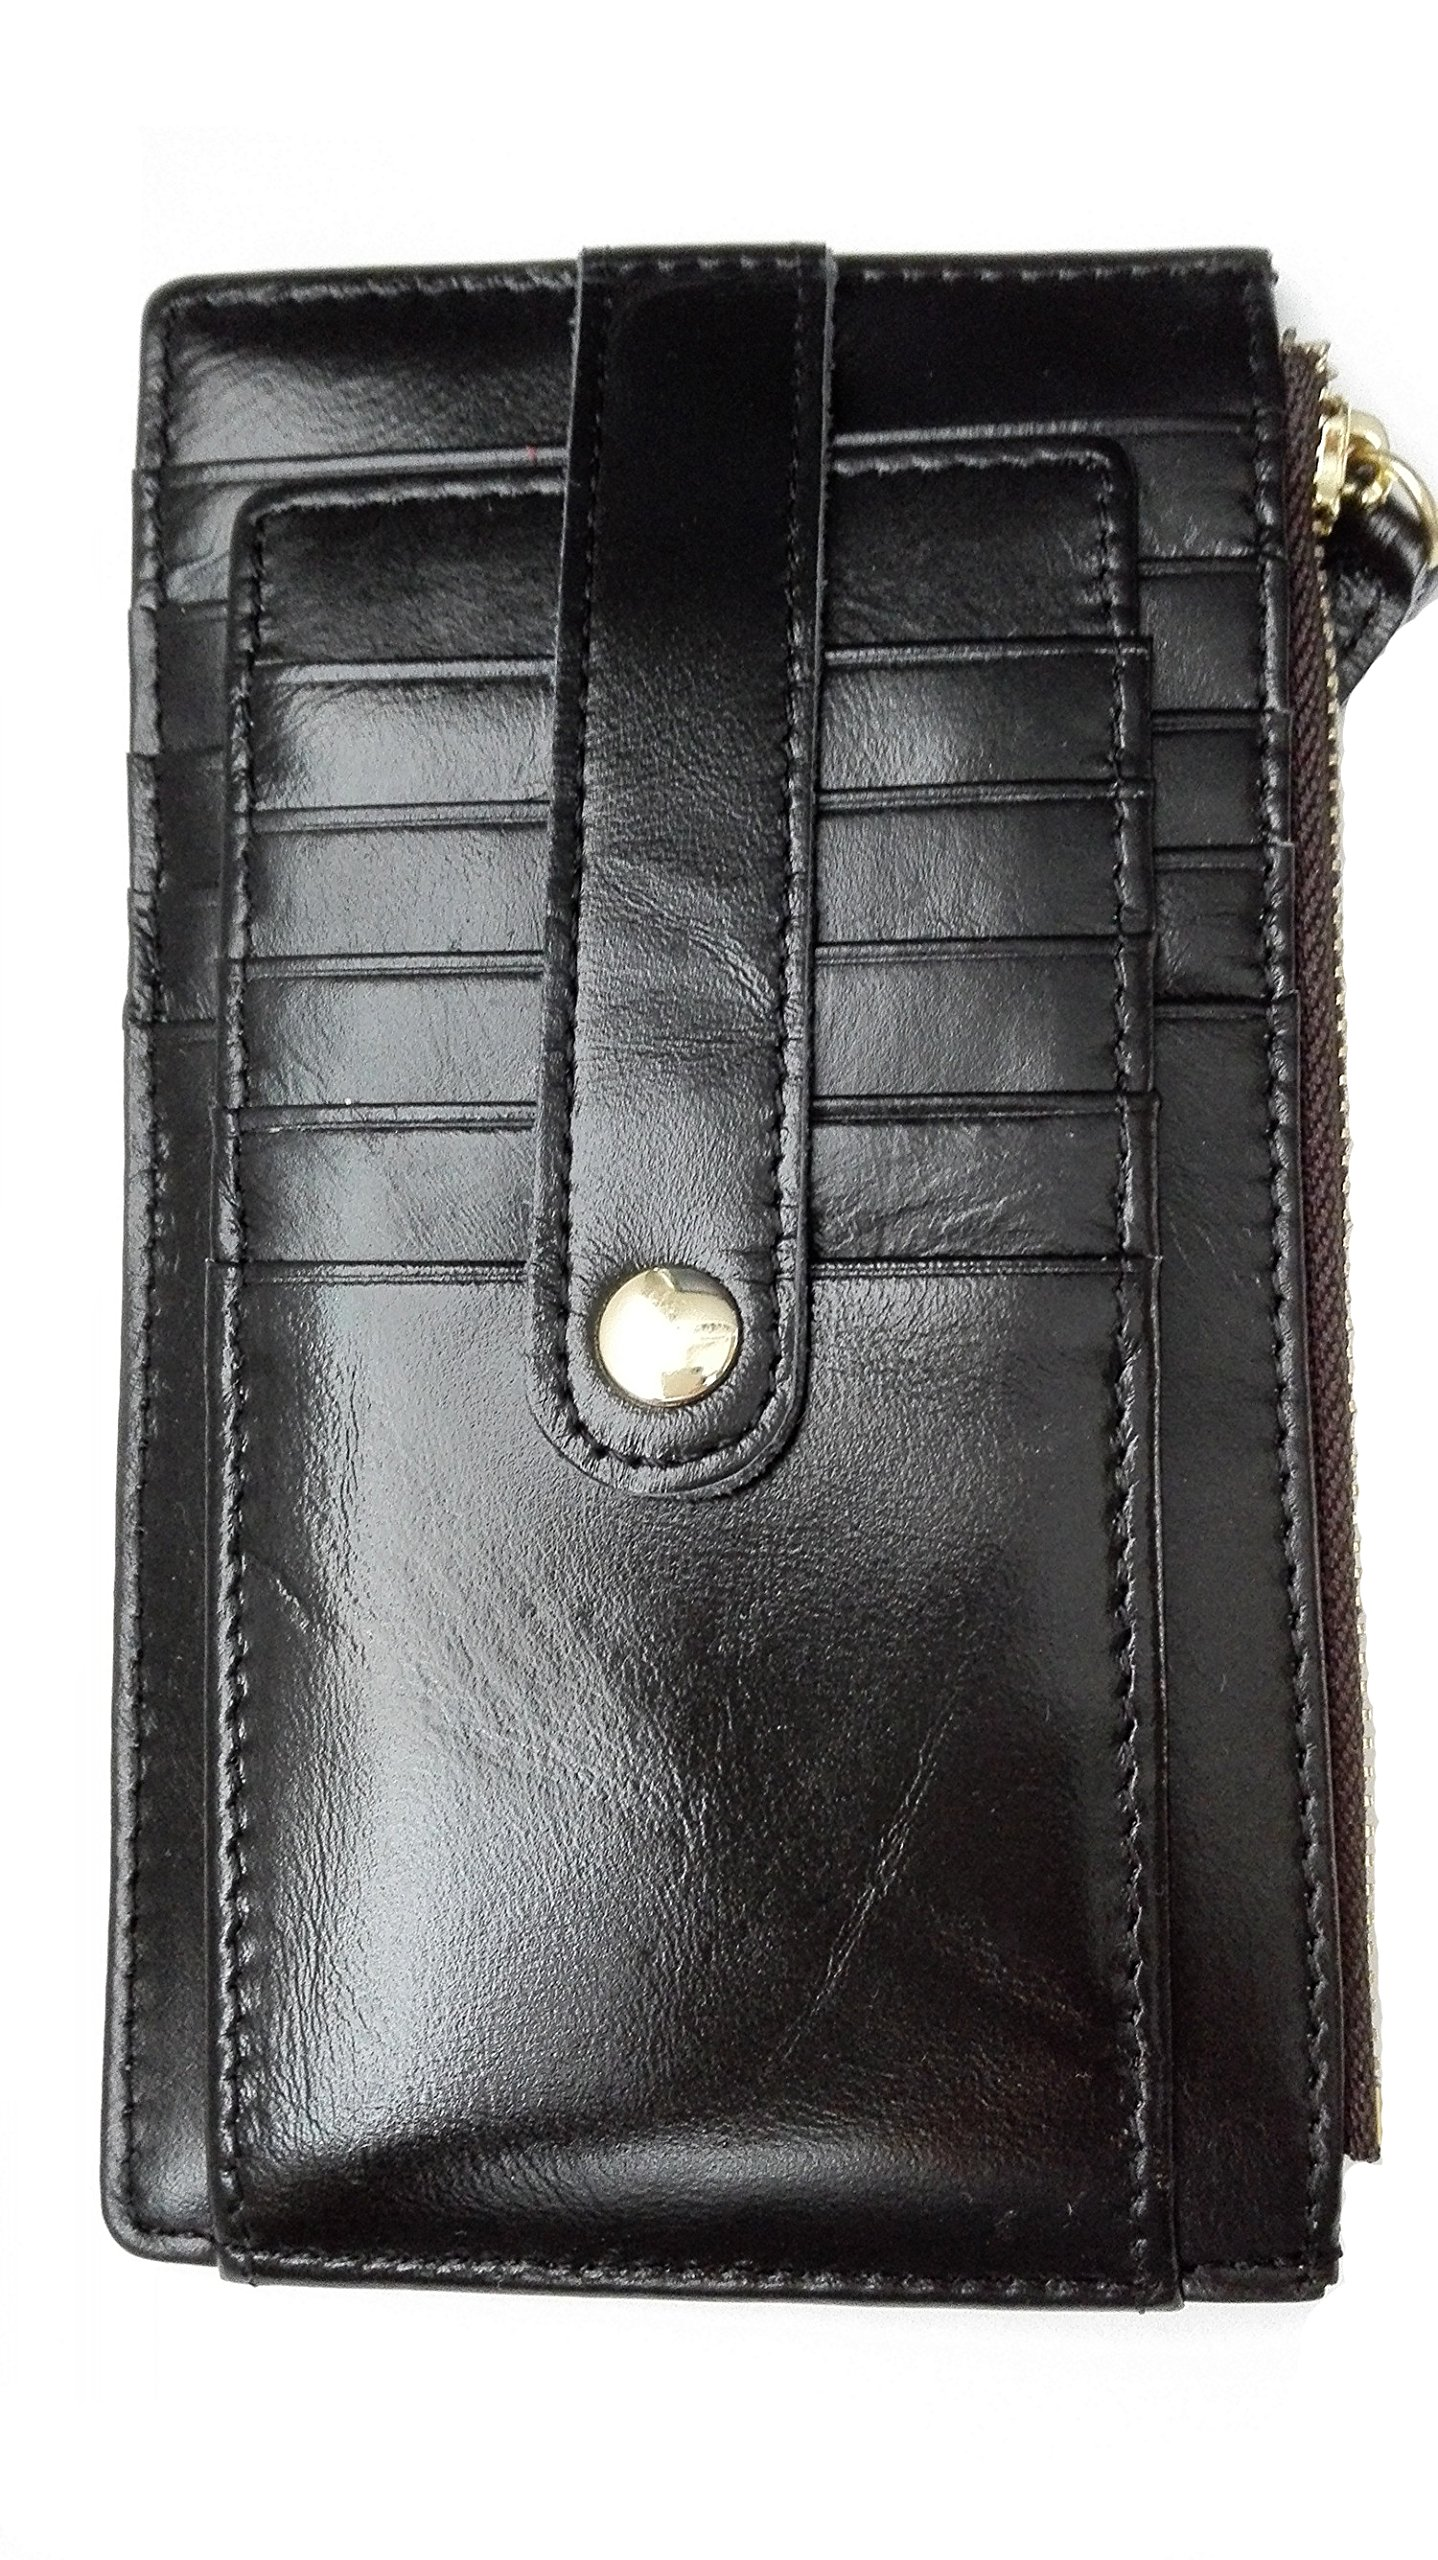 Top Grain Leather Multi 15 Bifold Credit Card Organizer Wallet Bifold with Snap (Black)